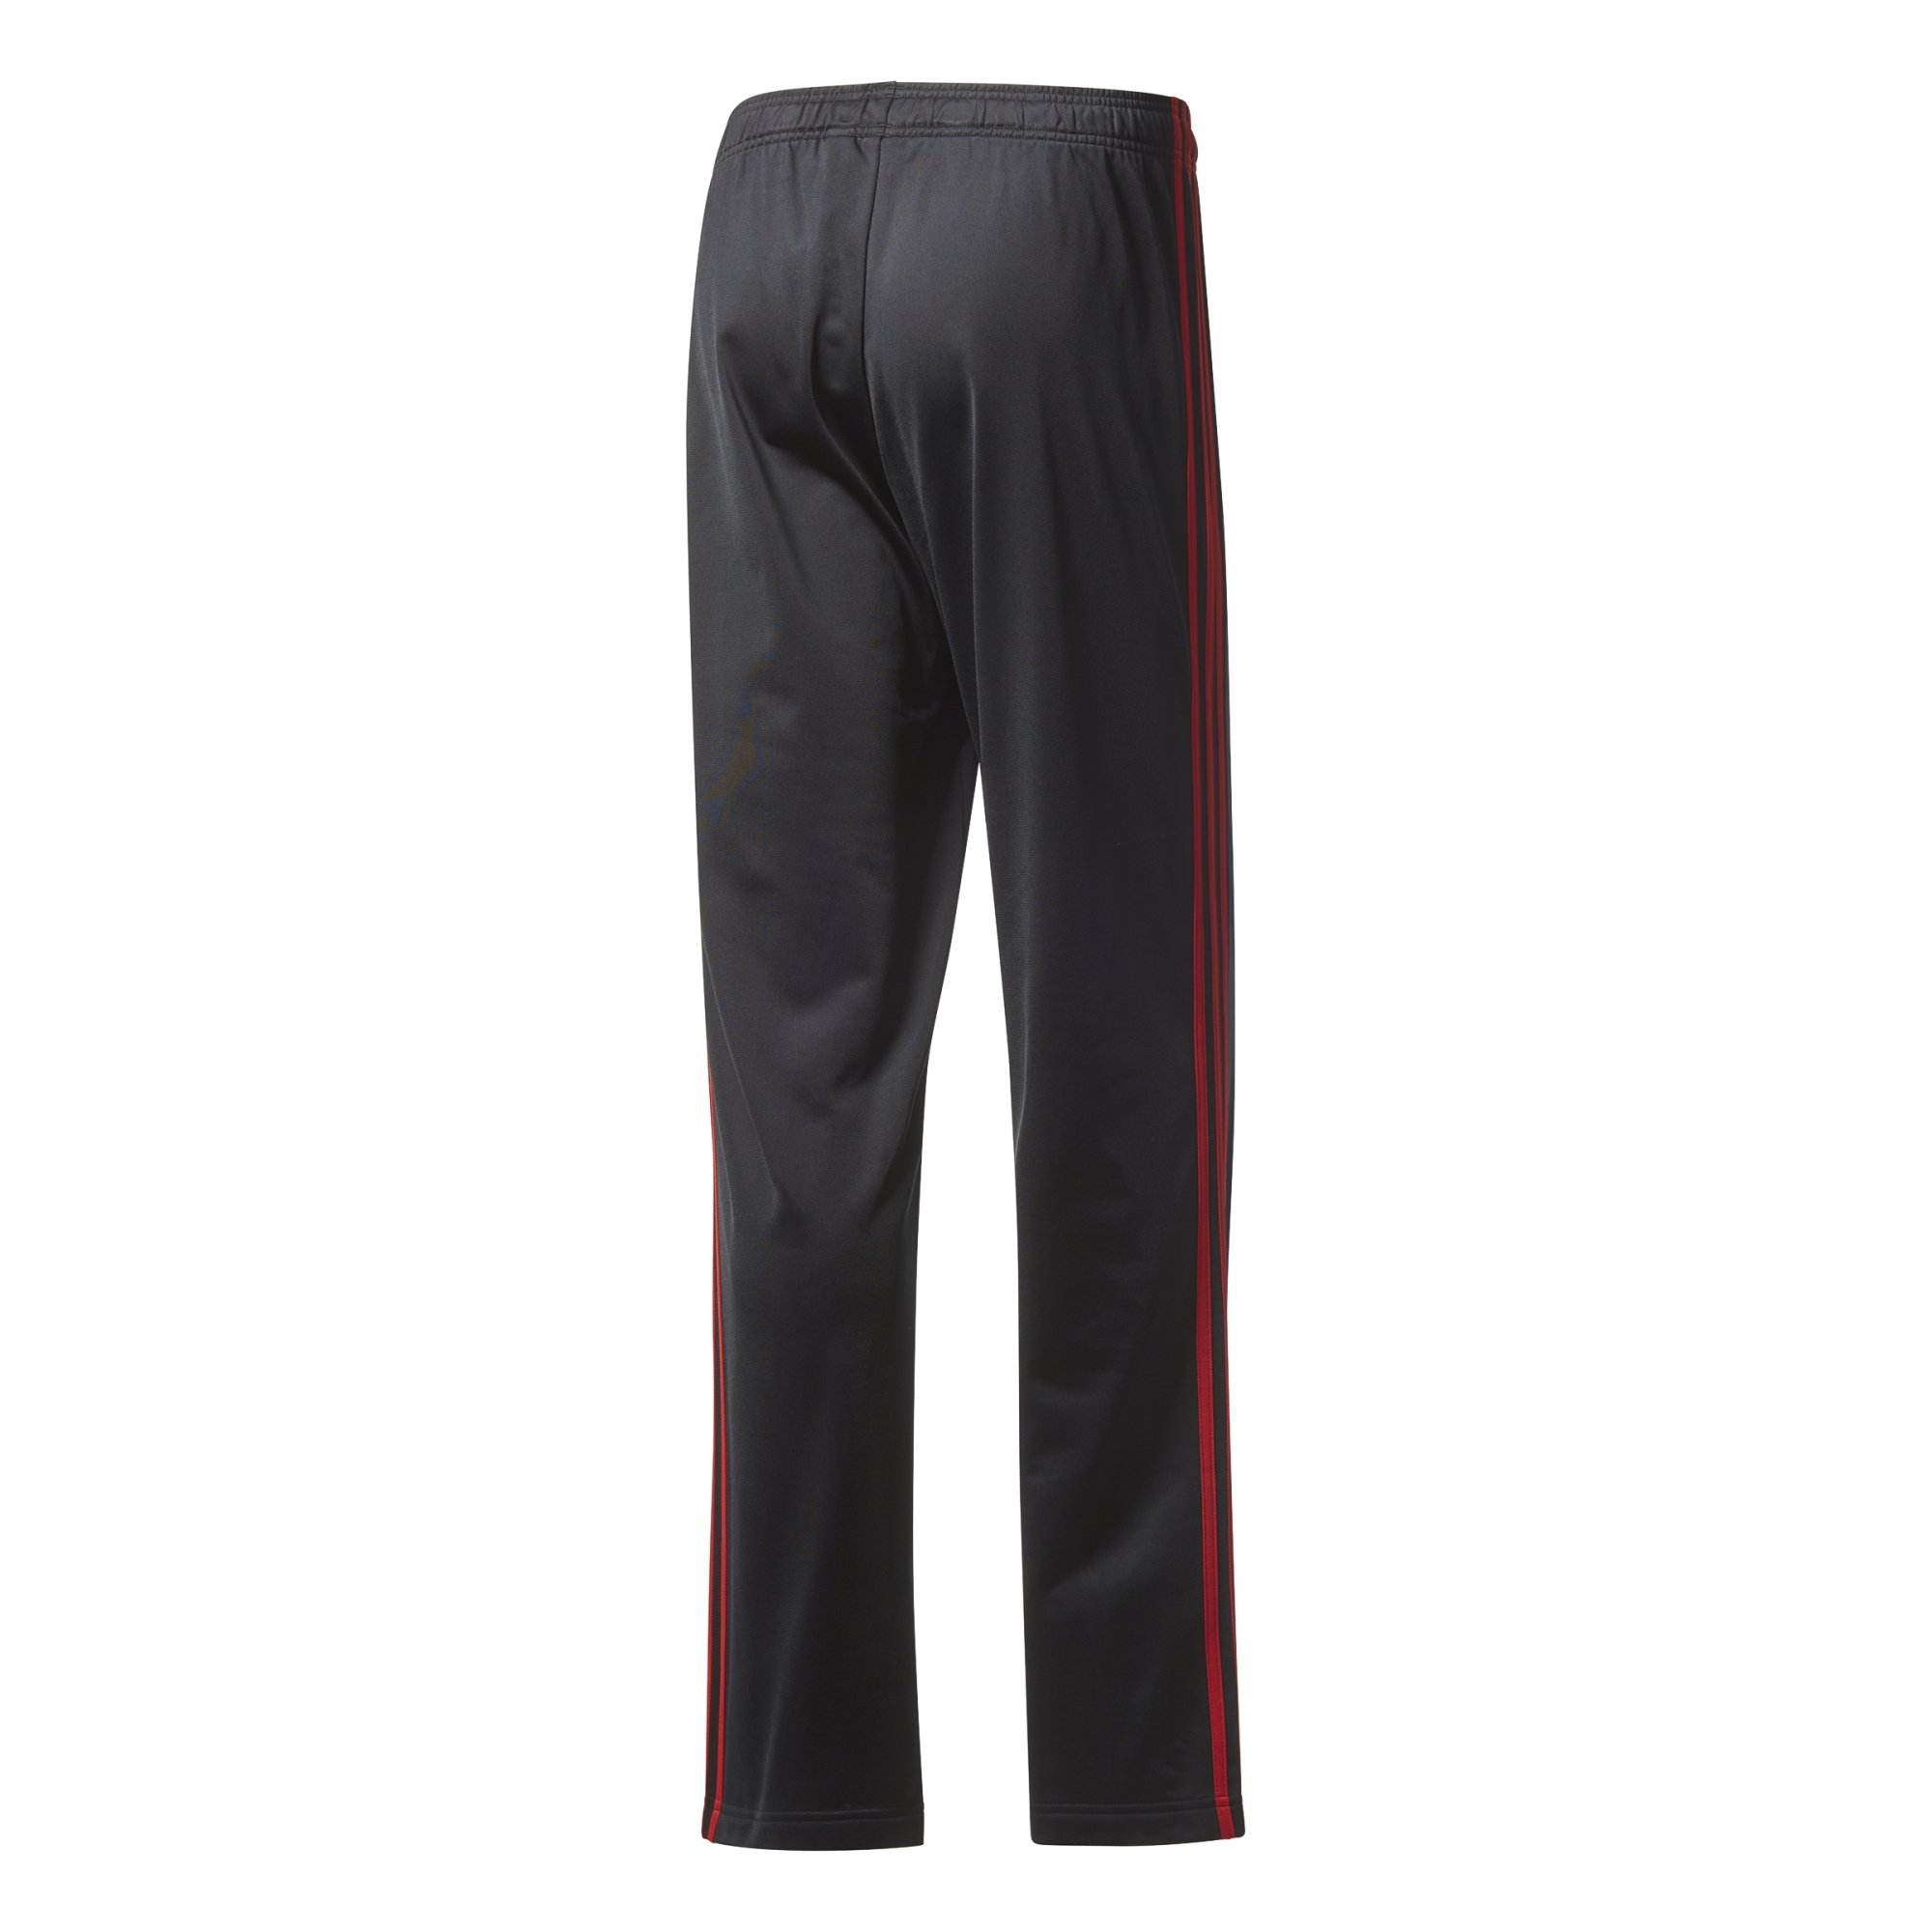 adidas Men's Athletics Essential Tricot 3-Stripe Pants, Black/Scarlet, Small by adidas (Image #4)